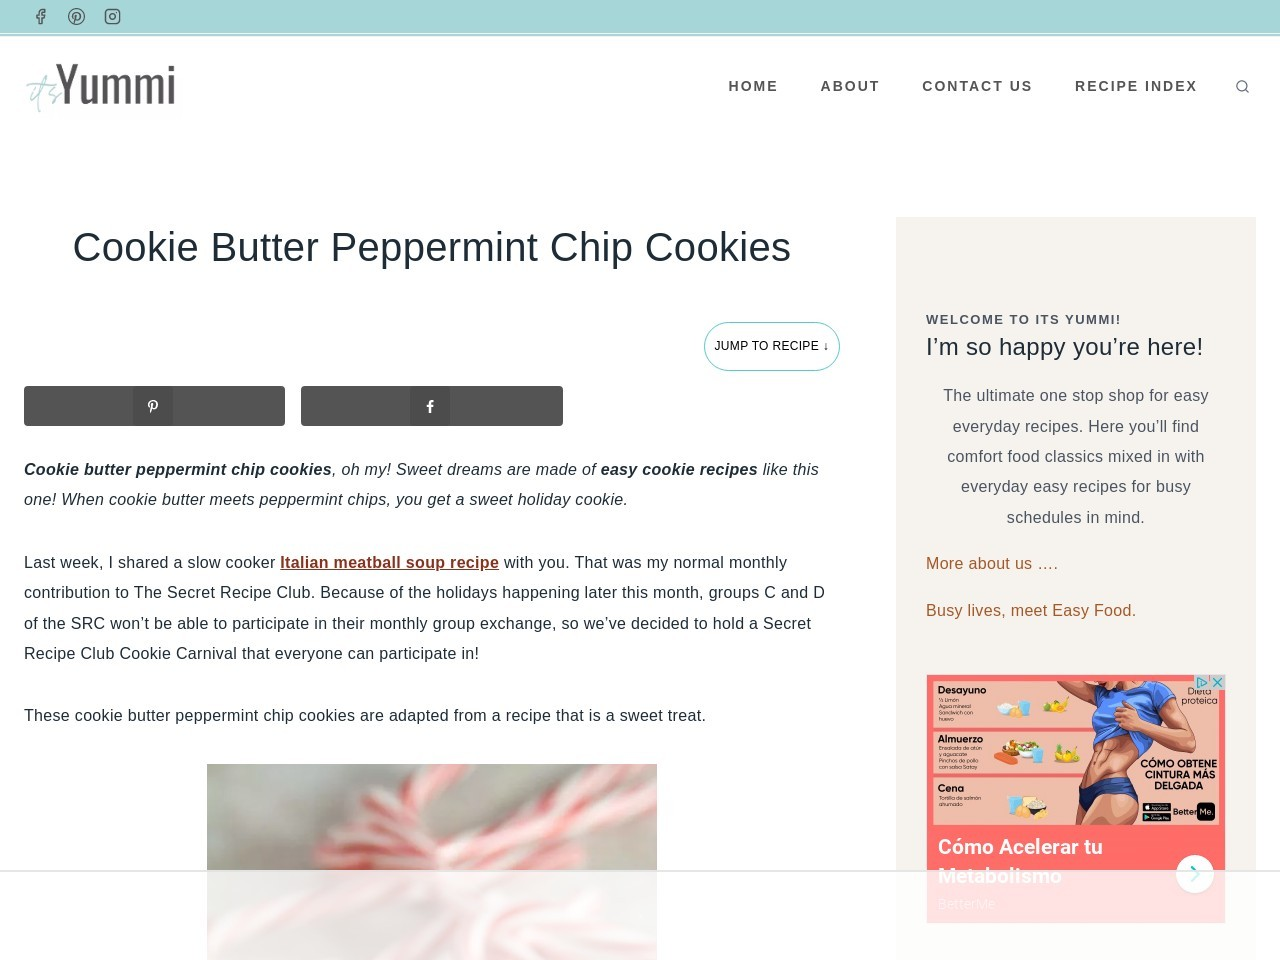 Easy Cookie Recipes: Cookie Butter Peppermint Chip